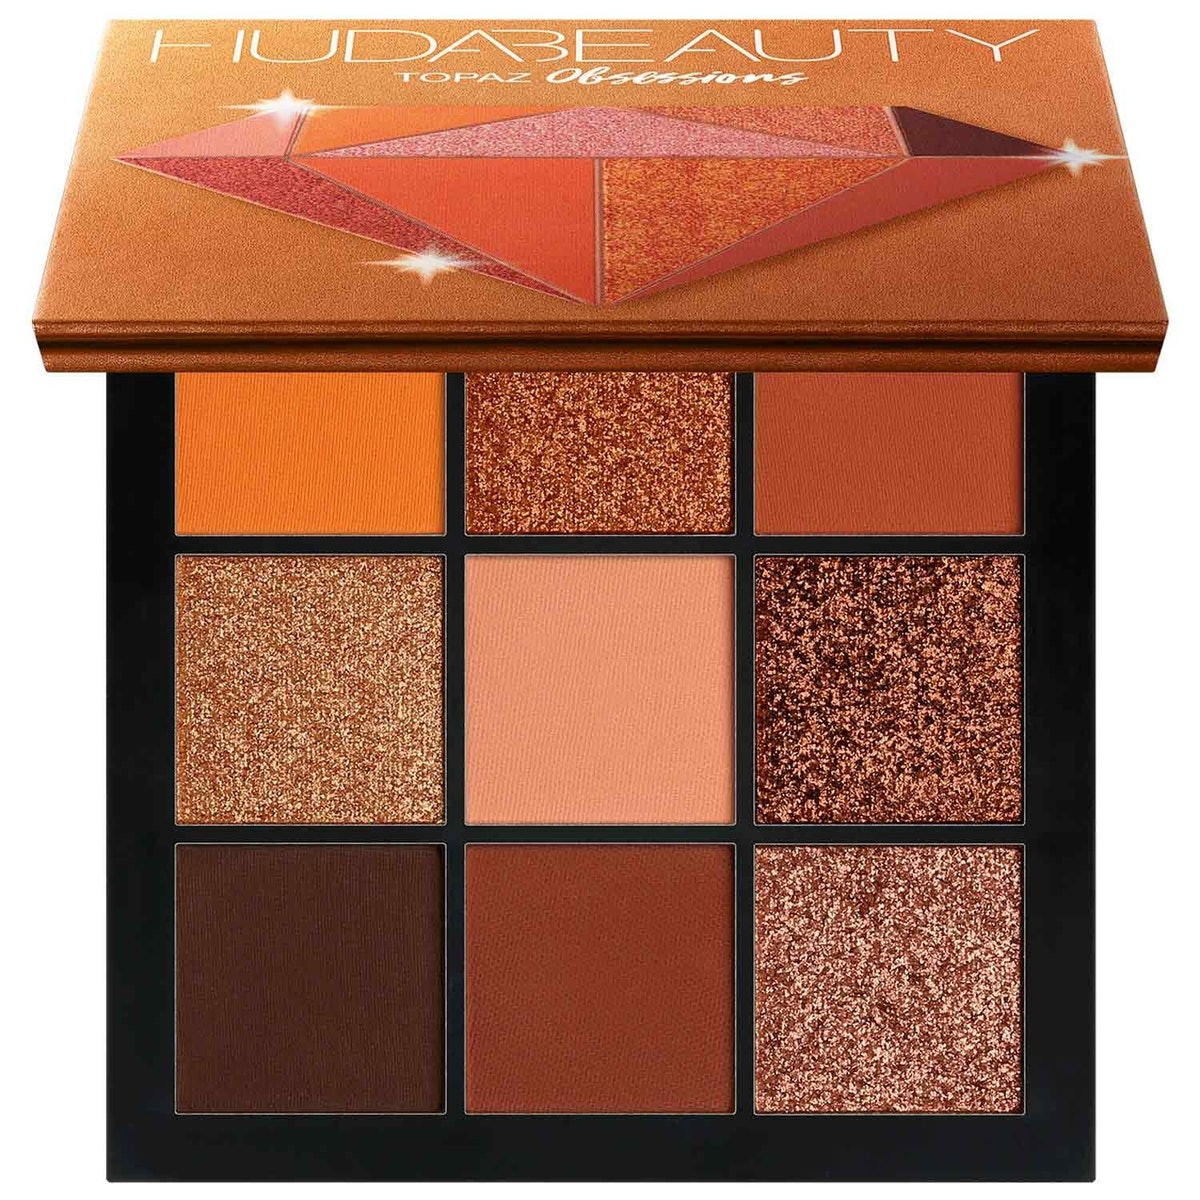 Obsessions Eyeshadow Palette Precious Stones Collection in Topaz